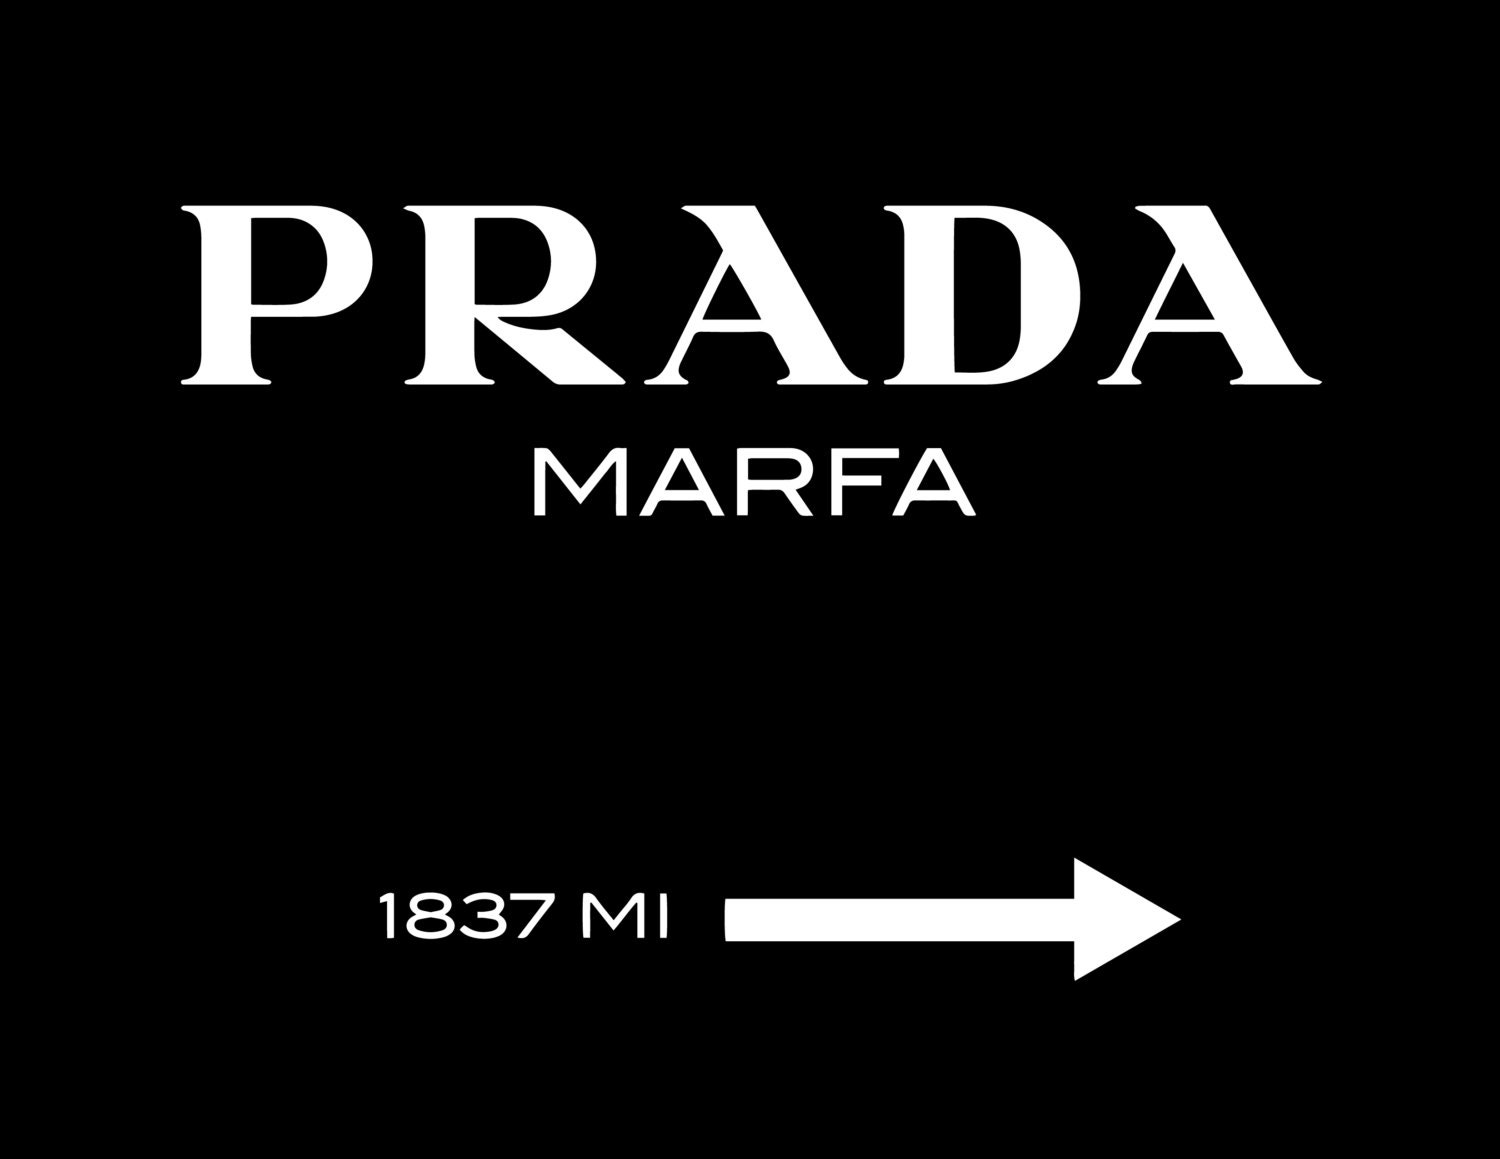 prada marfa print painting by creativeprintsbynv on etsy. Black Bedroom Furniture Sets. Home Design Ideas